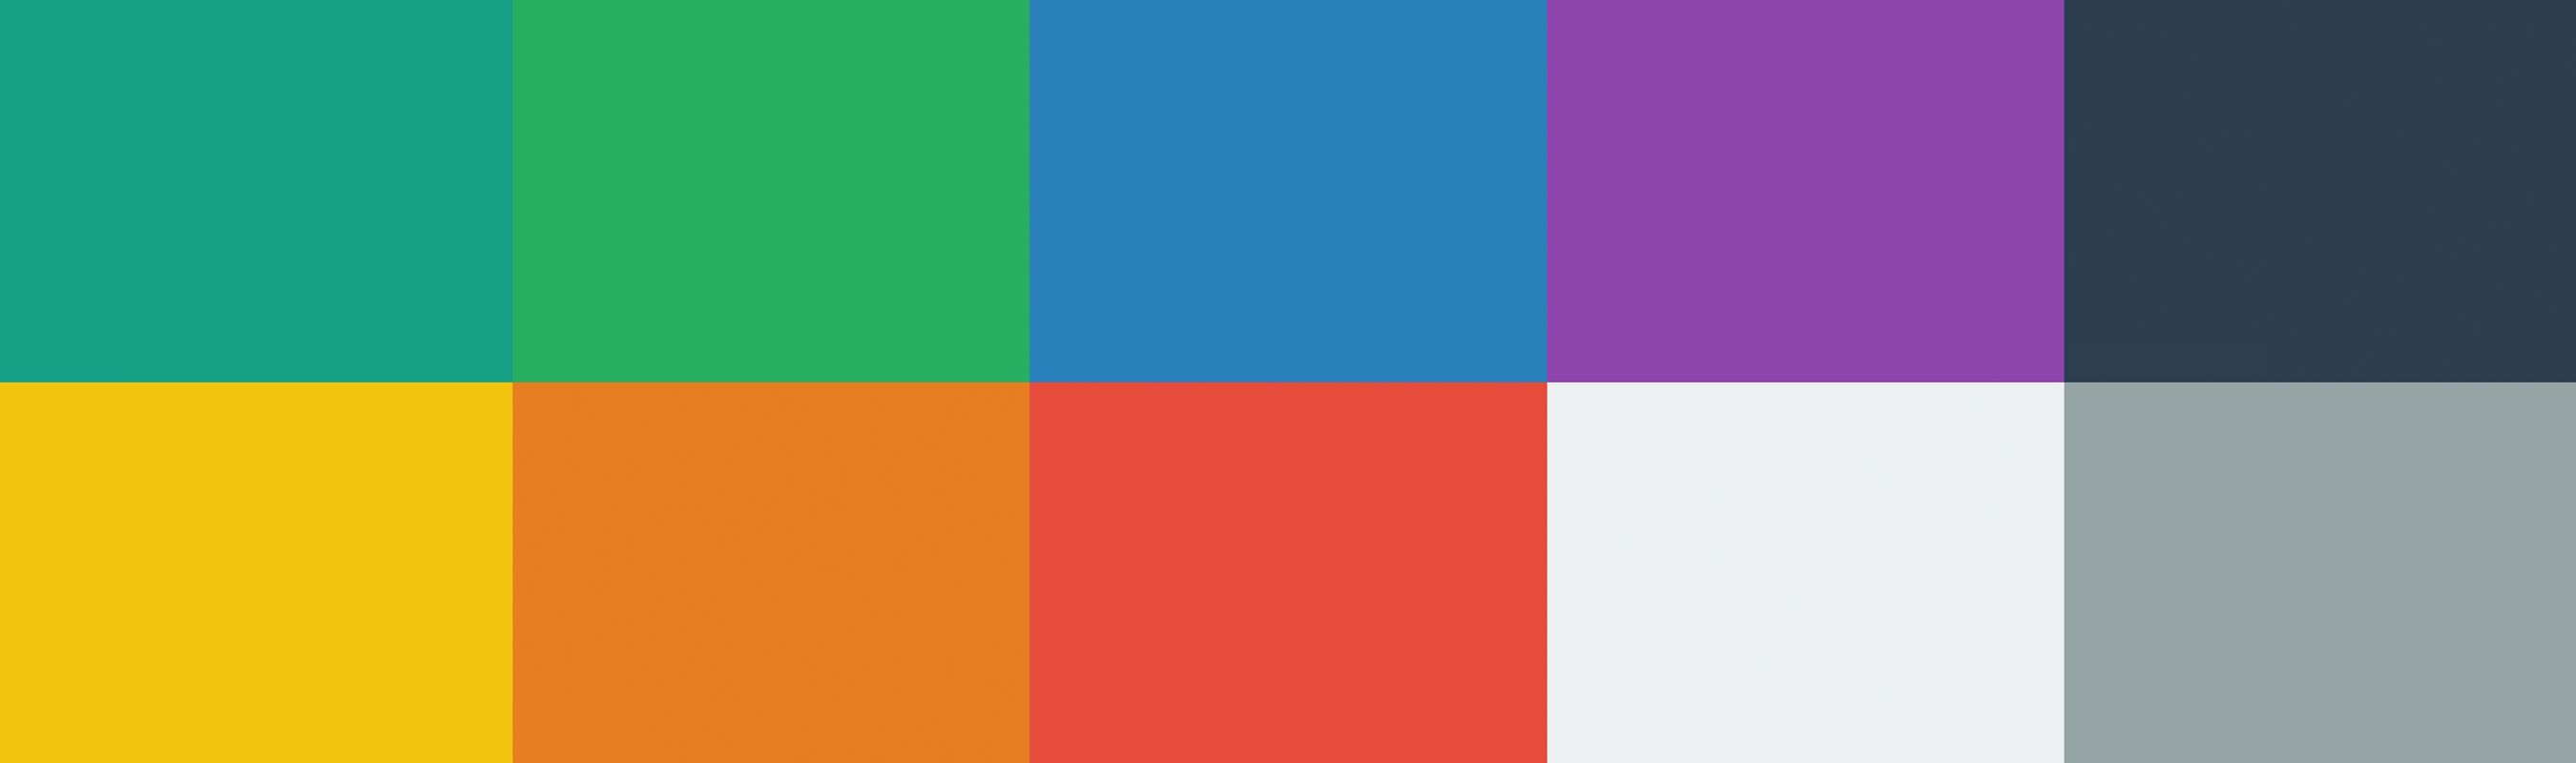 How To Create Perfect Color Combinations Subsign Medium